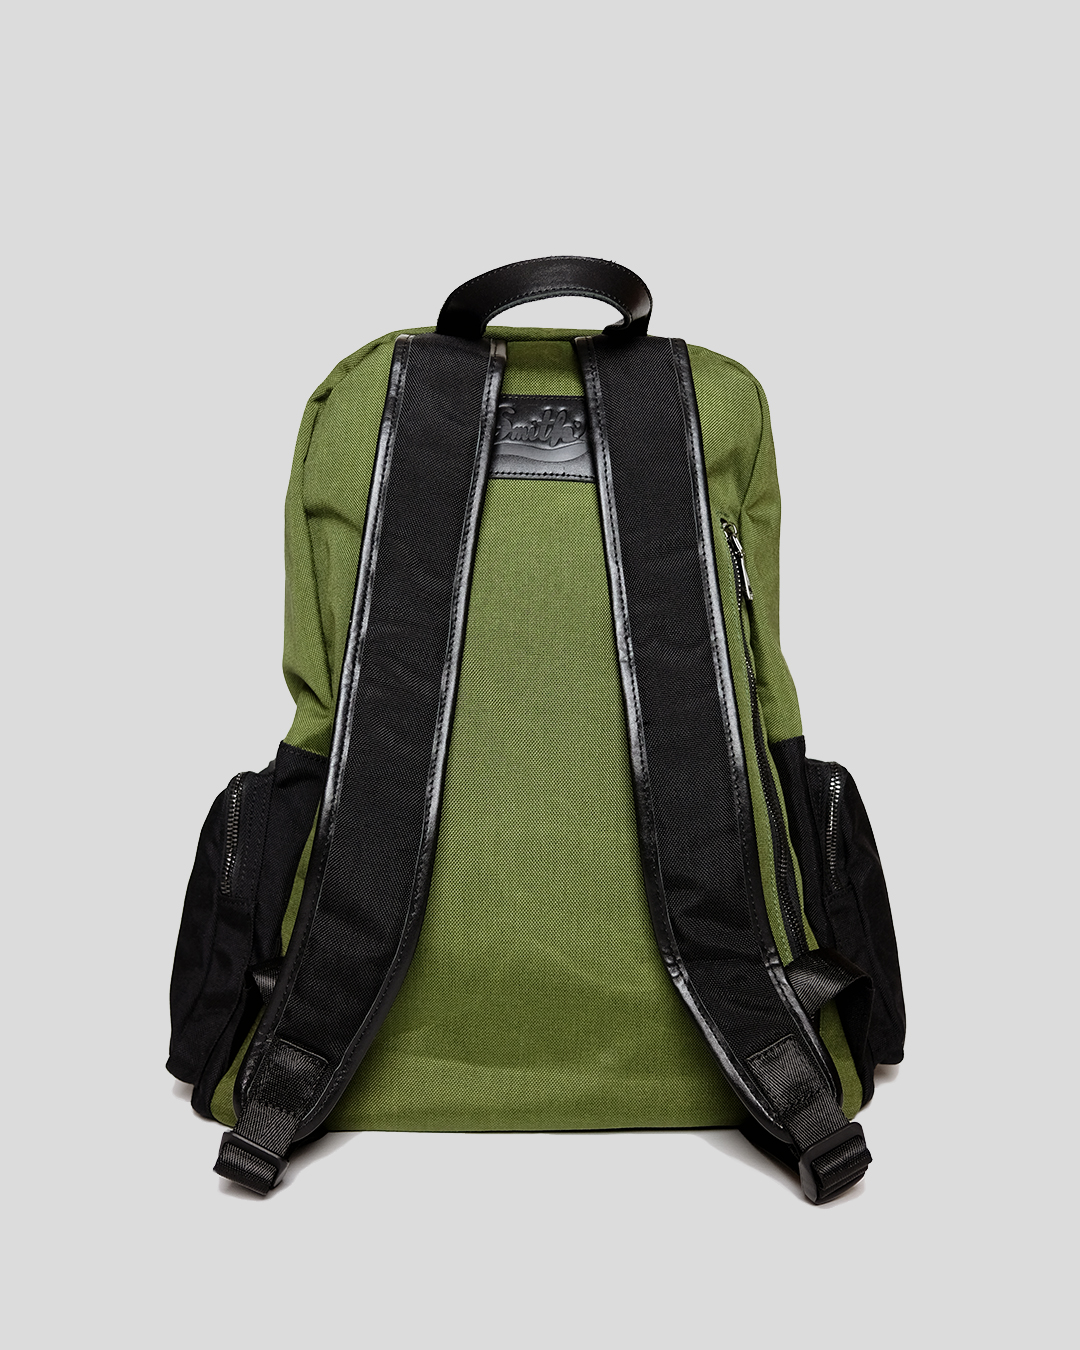 photo-3-GREEN-CORDURA-BACKPACK-URBANE-MUSE-CHRIS-SMITH